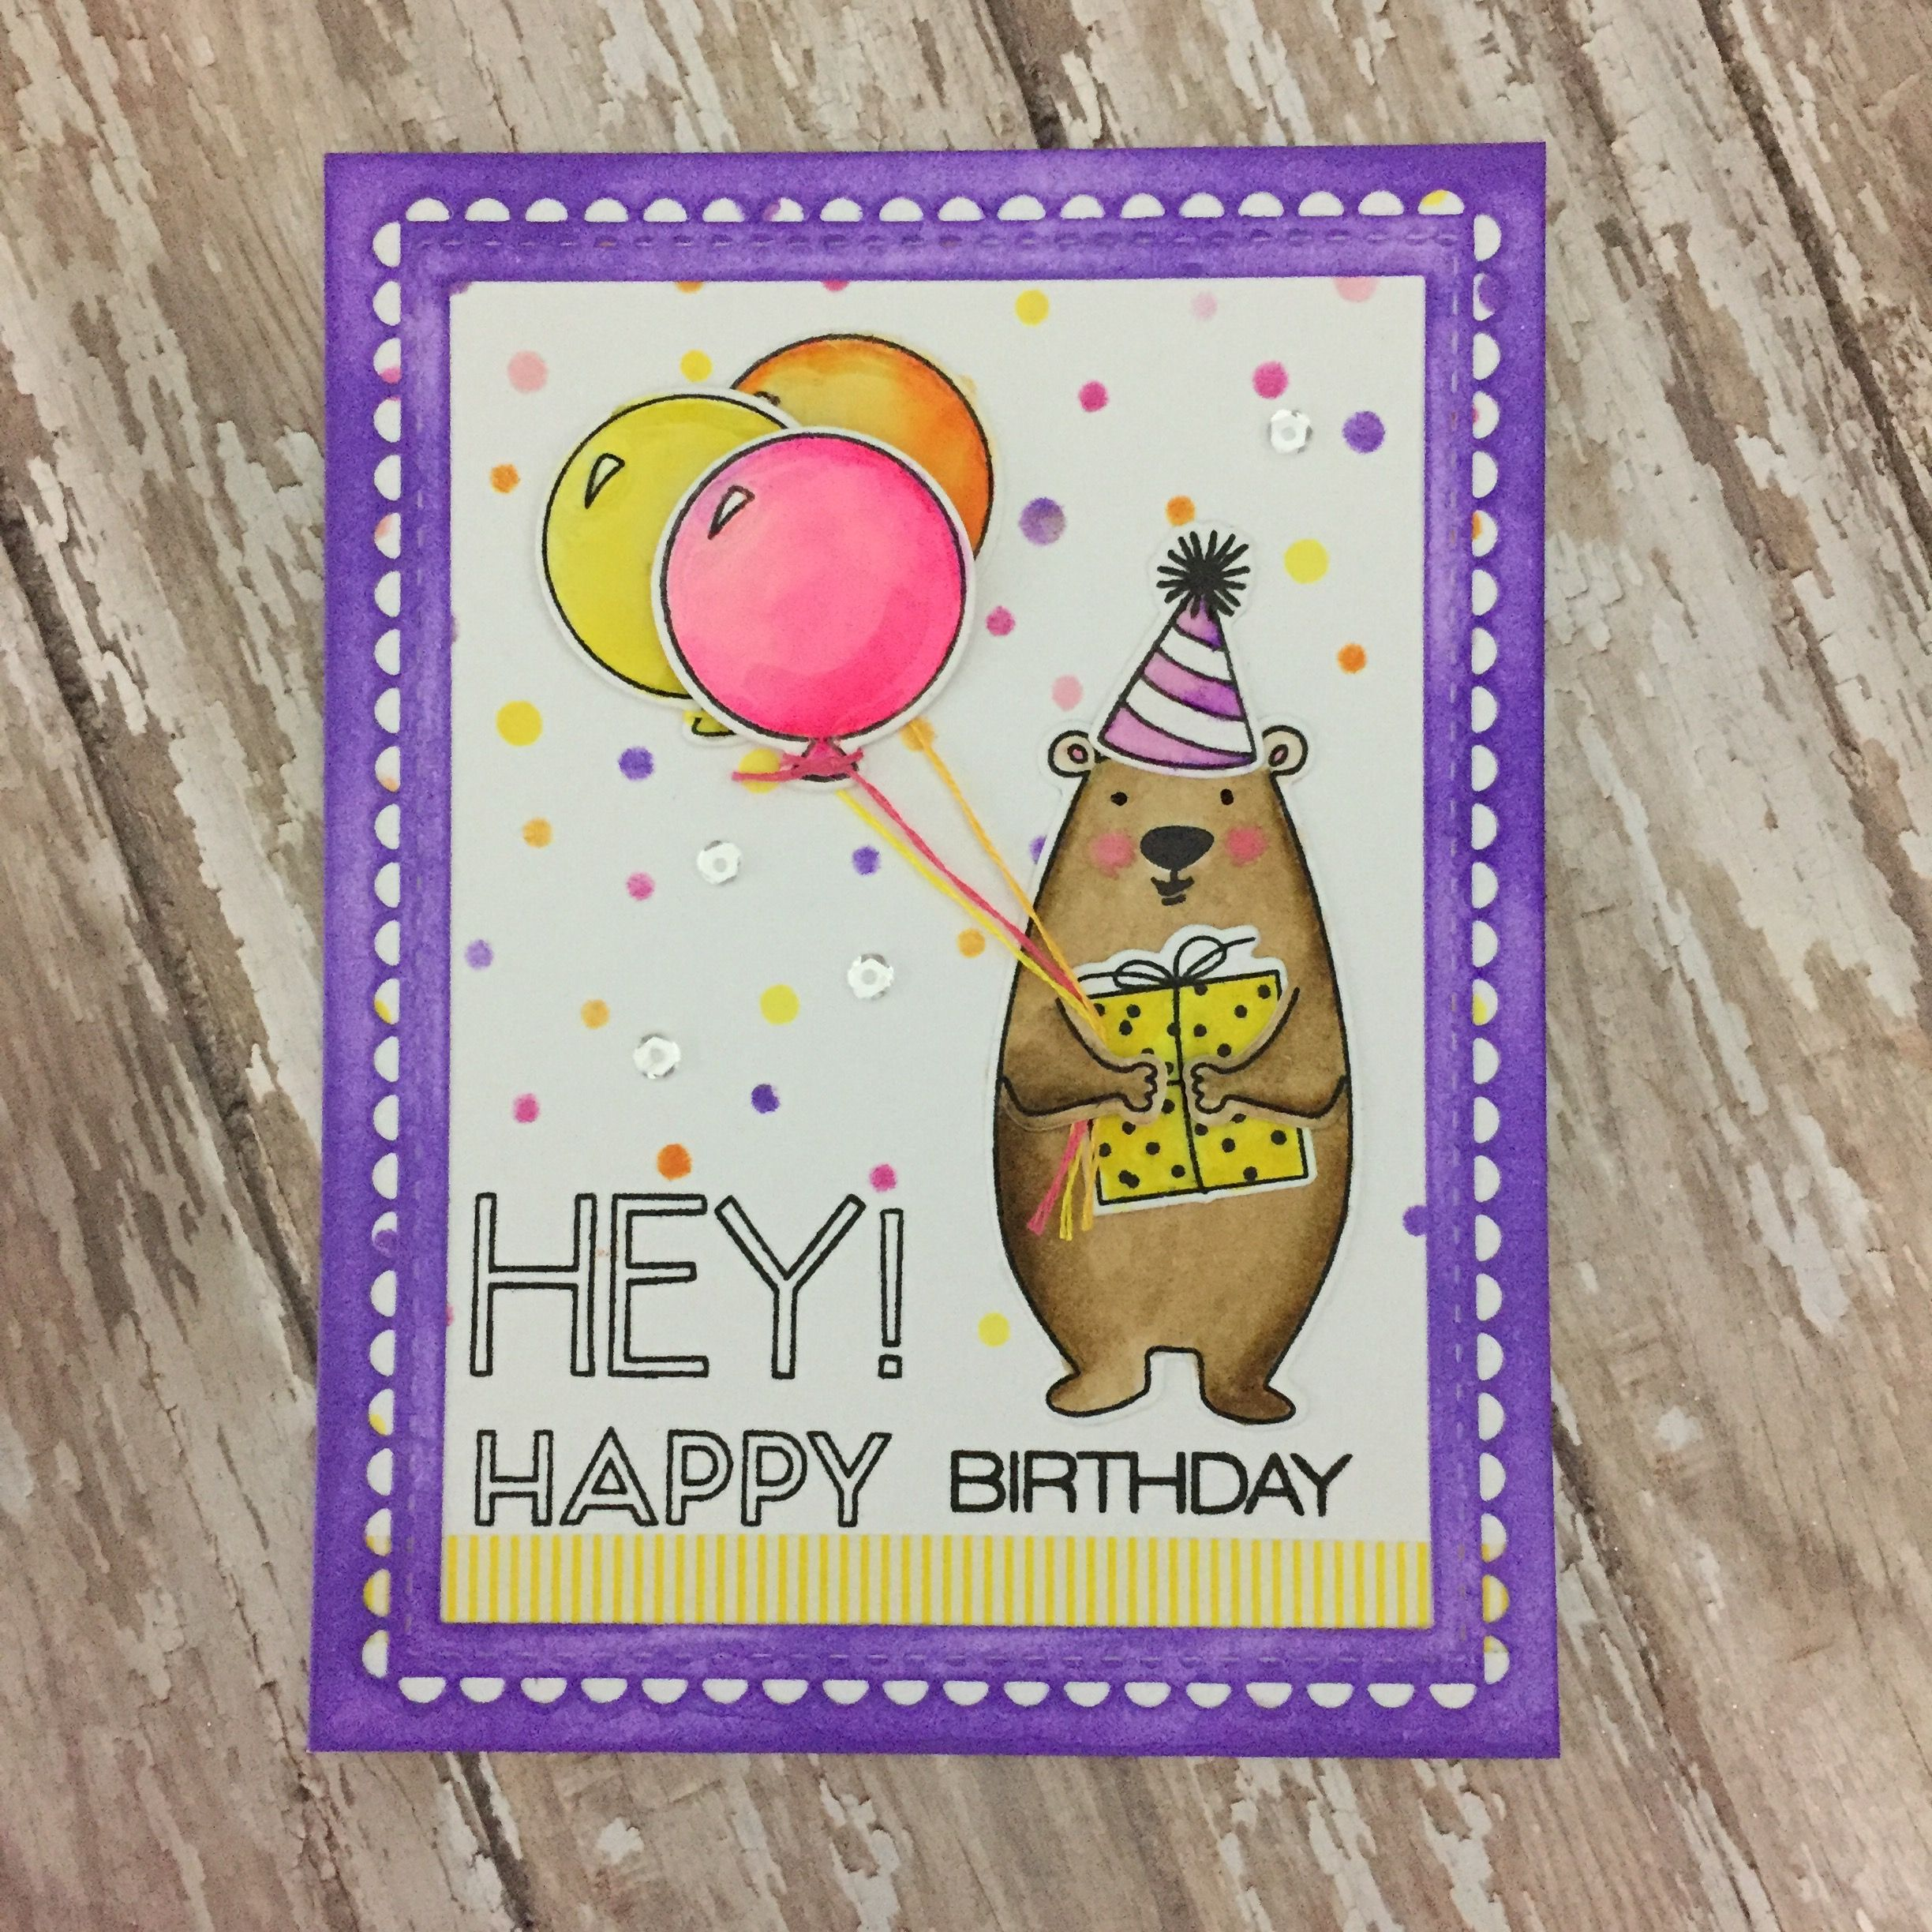 Happy Birthday Handmade Card With Essentials By Ellen All Inside